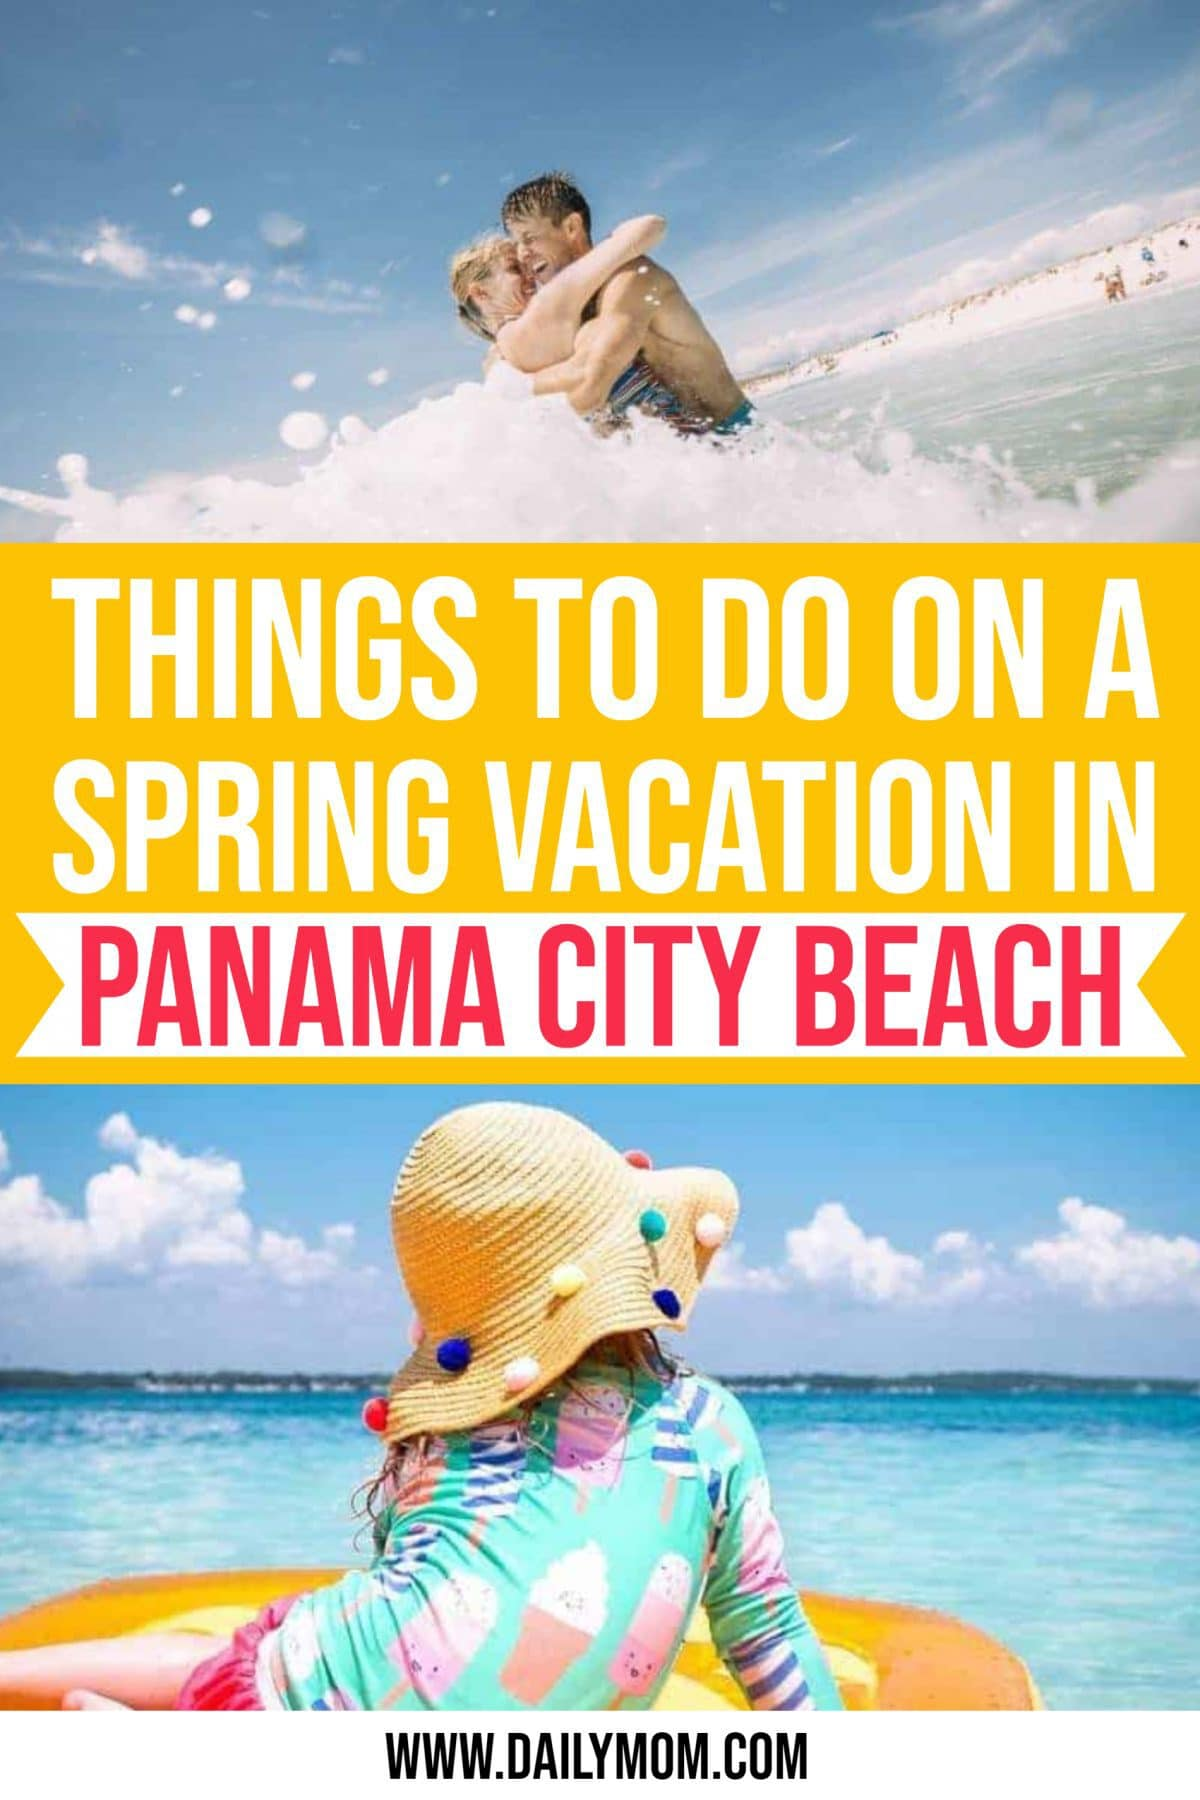 Why visit Panama City Beach for Spring Break